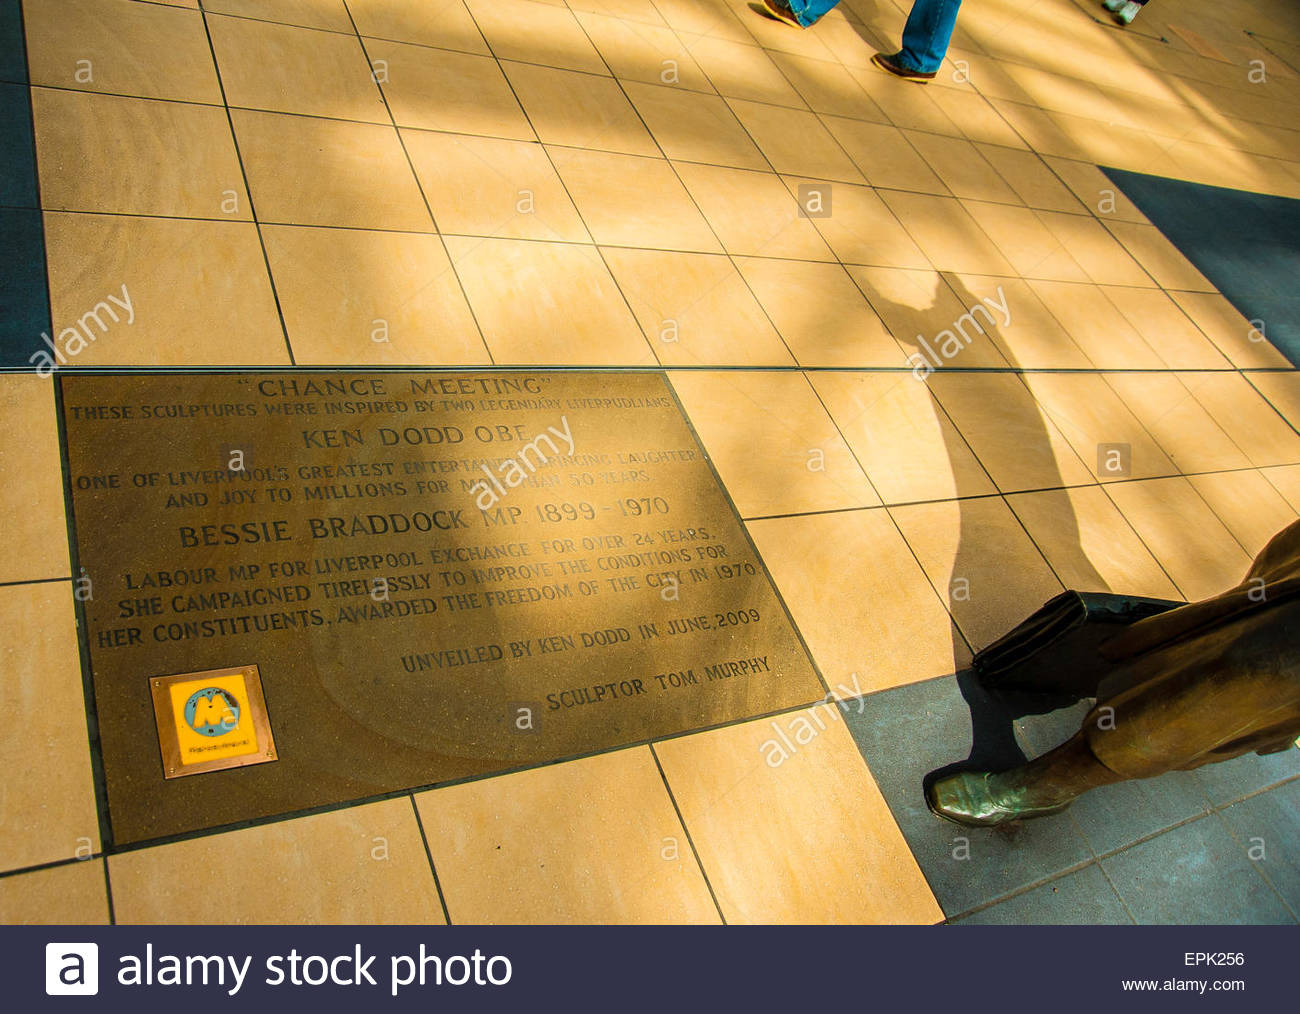 Chance Meeting, The Sculptures of the Liverpool comedian Ken Dodd & The Former MP for Liverpool Bessie Braddock - Stock Image